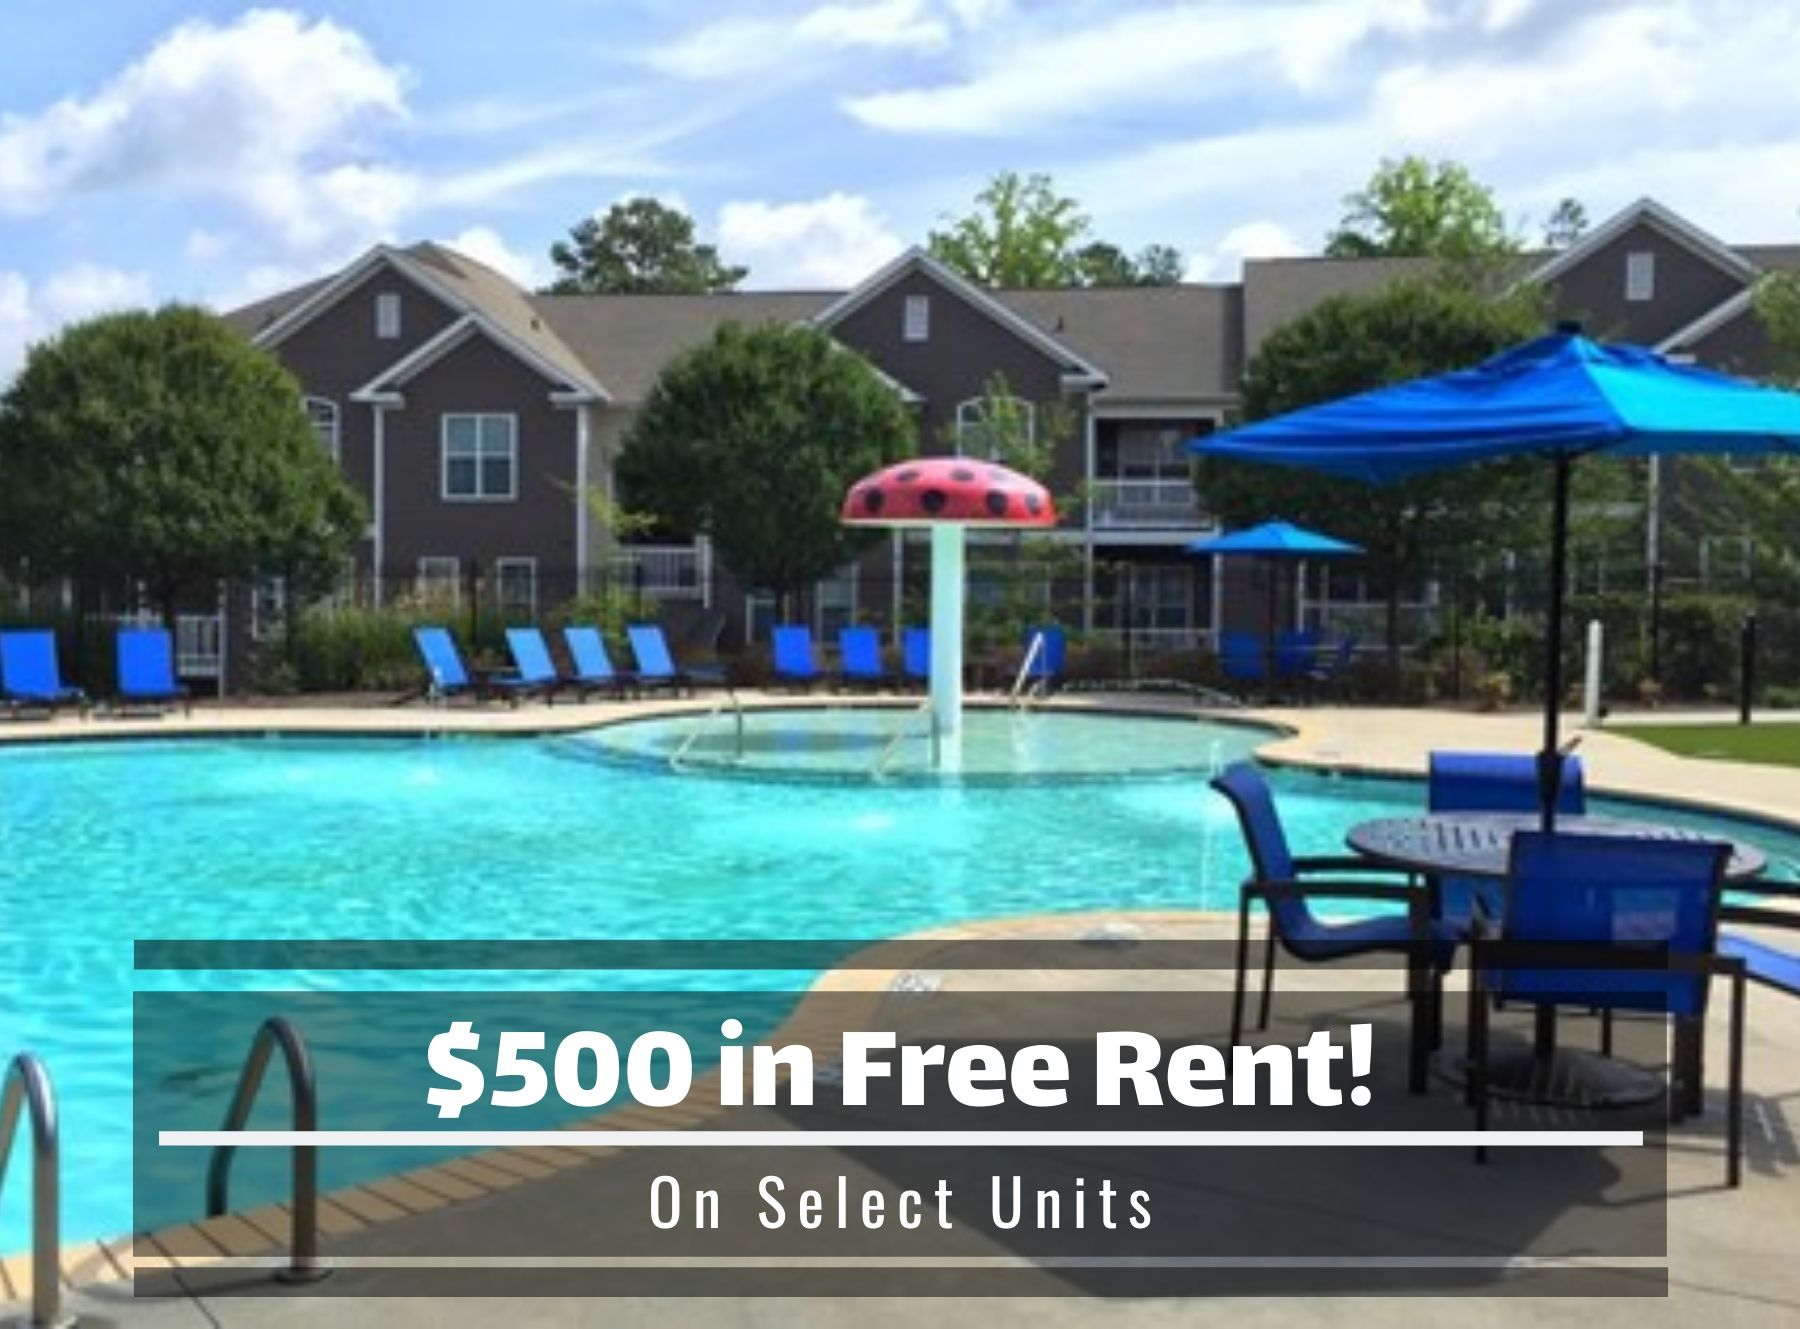 $500 in free rent, on select units